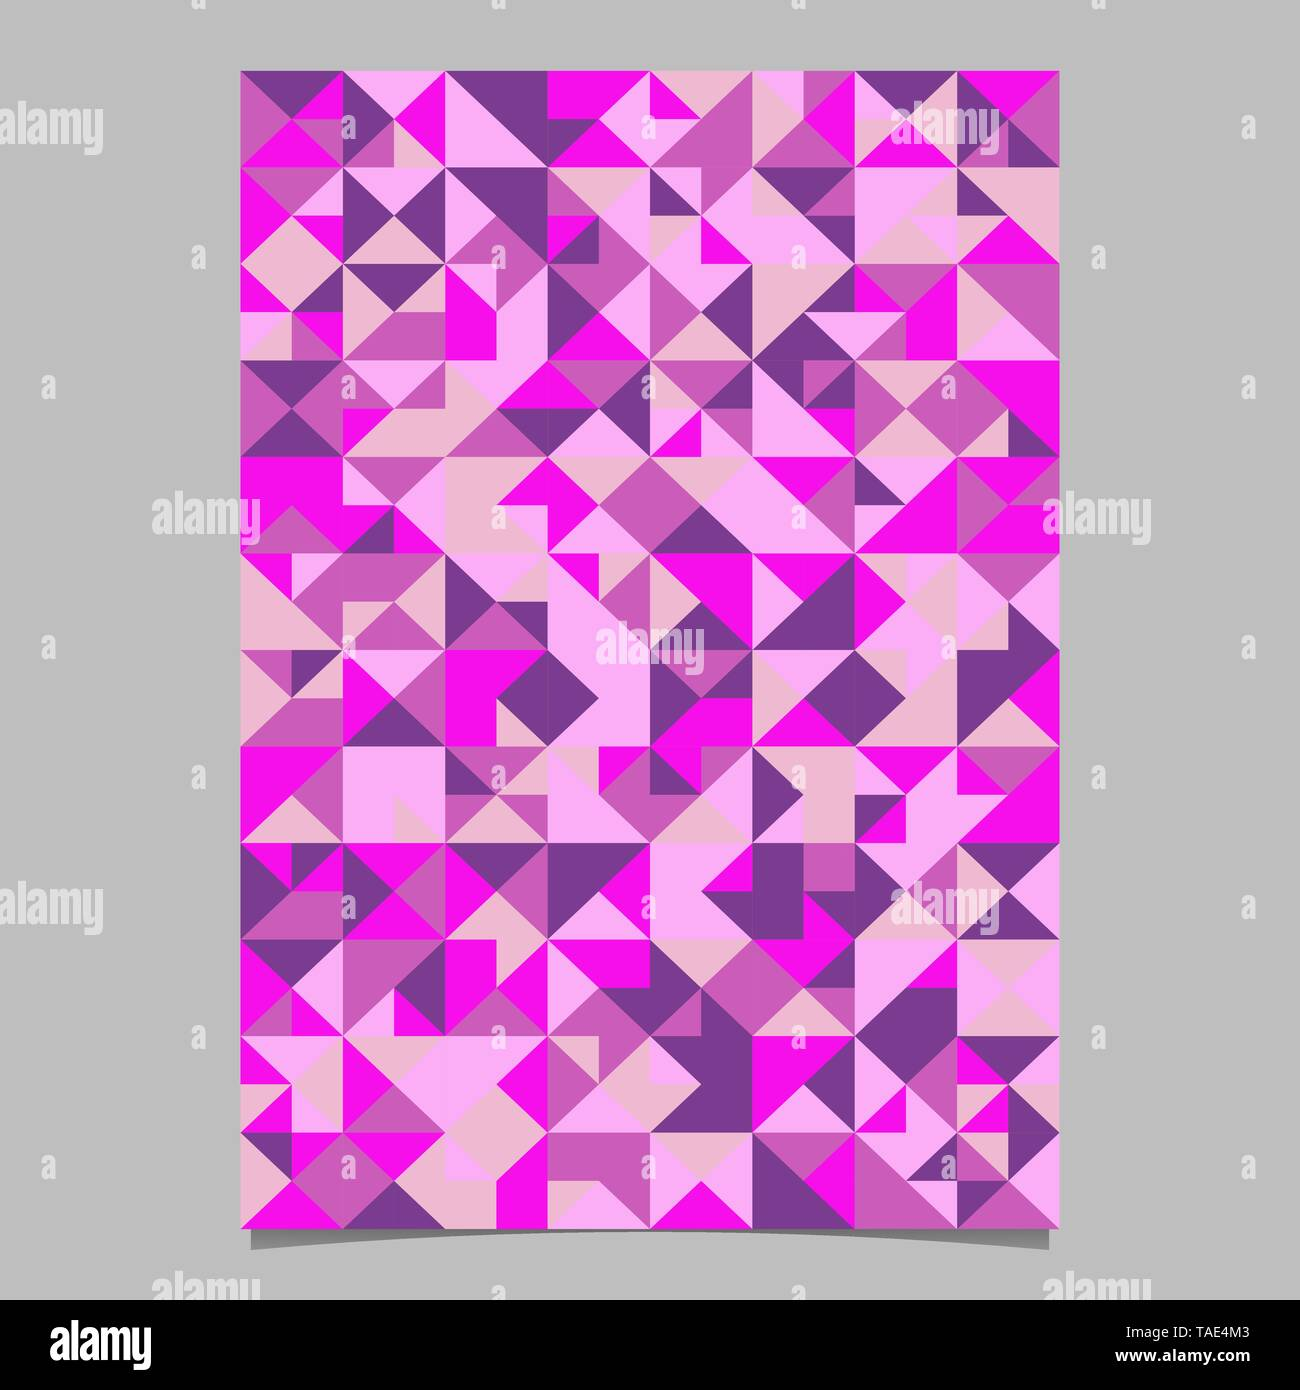 Polygonal colorful abstract geometrical triangle tile poster template - Stock Image